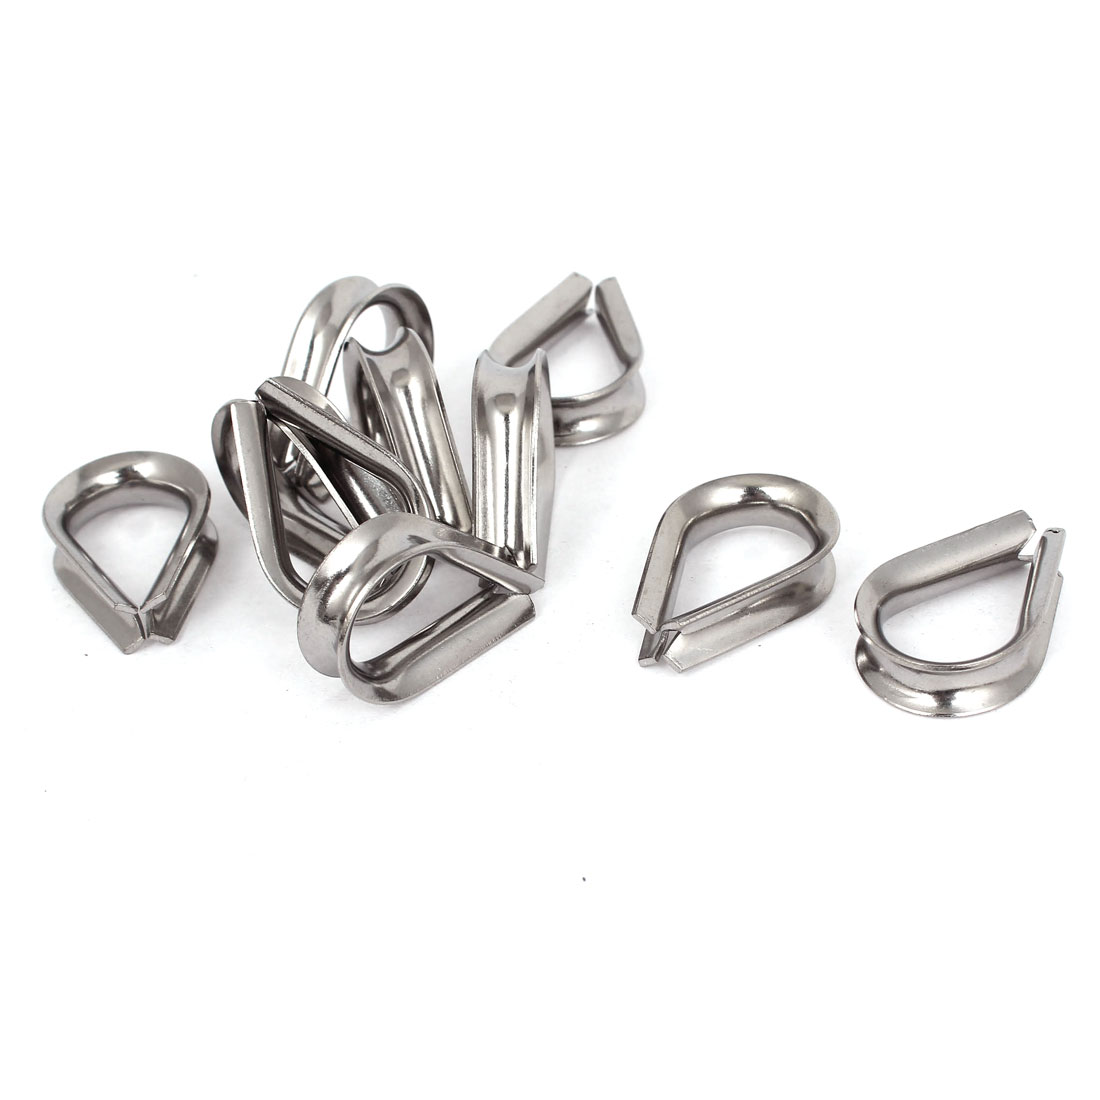 Stainless Steel 6mm Standard Wire Rope Cable Thimbles Rigging Tool 10pcs